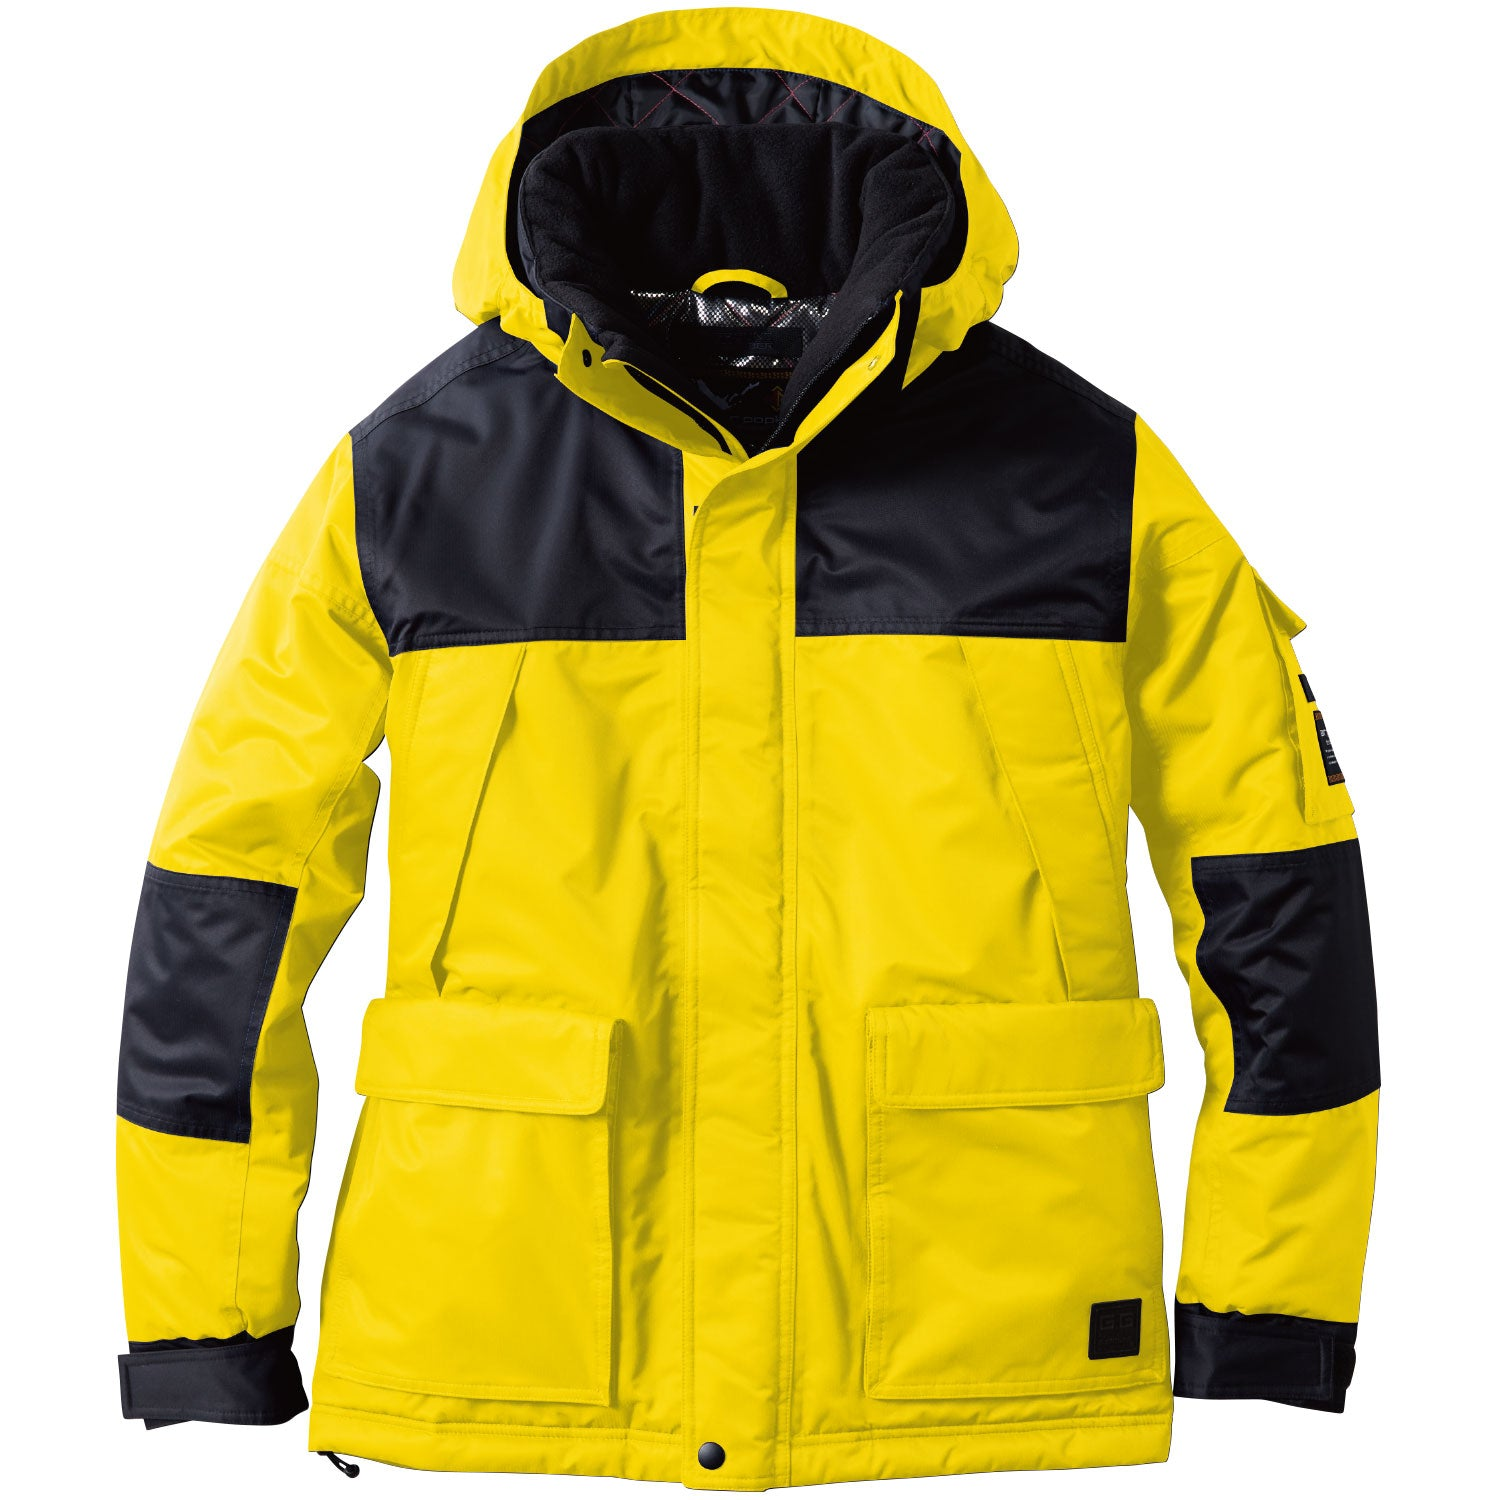 SOWA 7114-00 Waterproof and cold protection wear